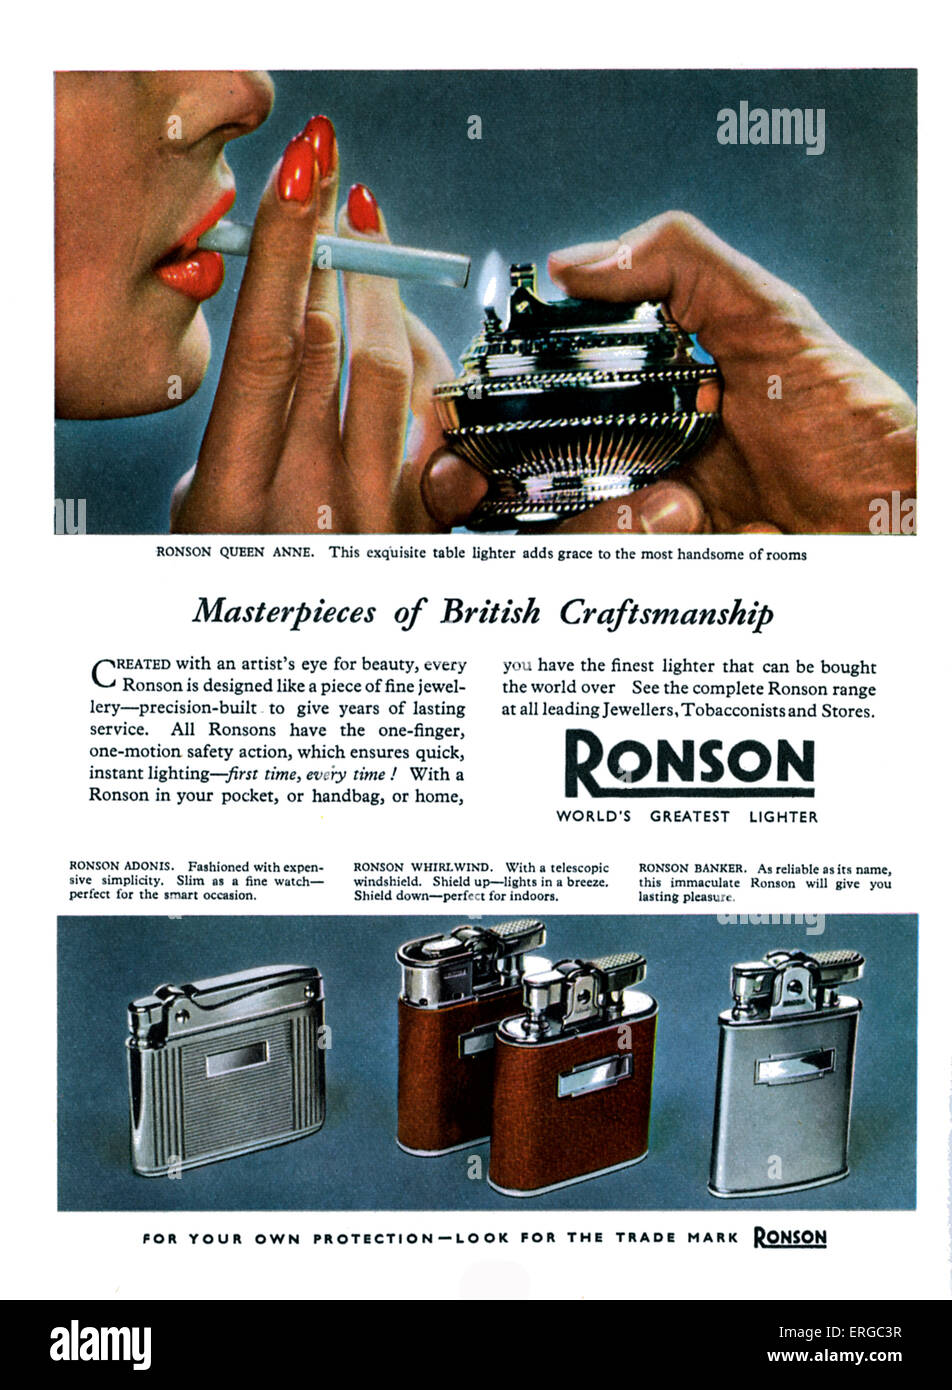 Advertisement for Ronson cigarette lighters, 1950s. A man's hand lighting a woman's cigarette. - Stock Image